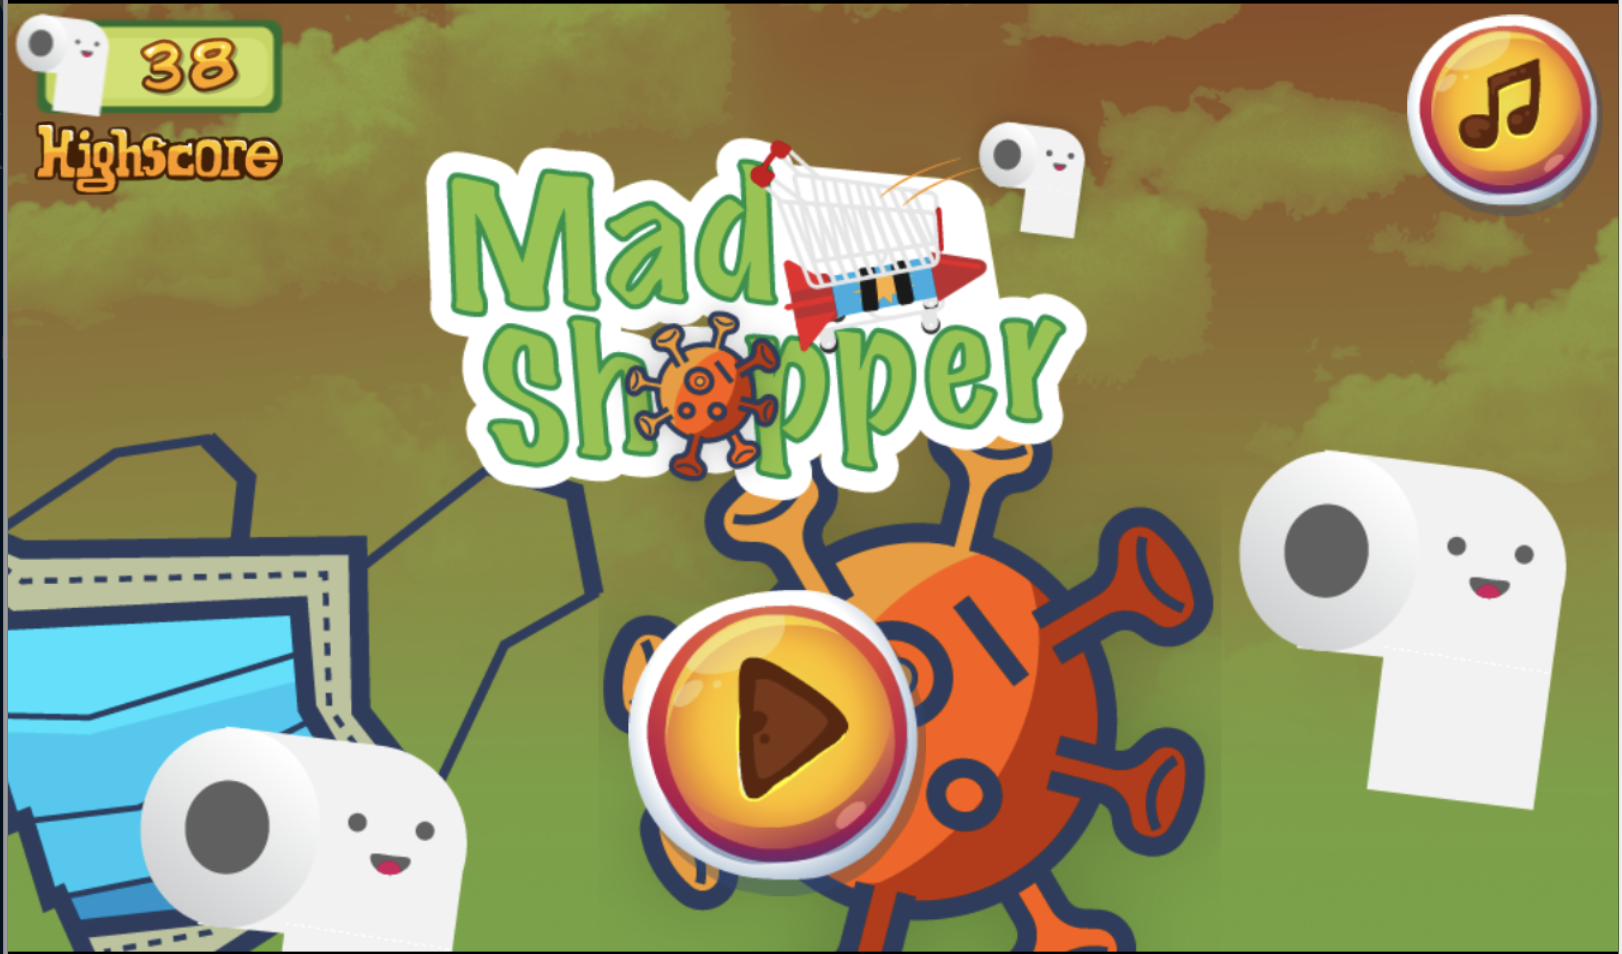 Mad Shopper title image